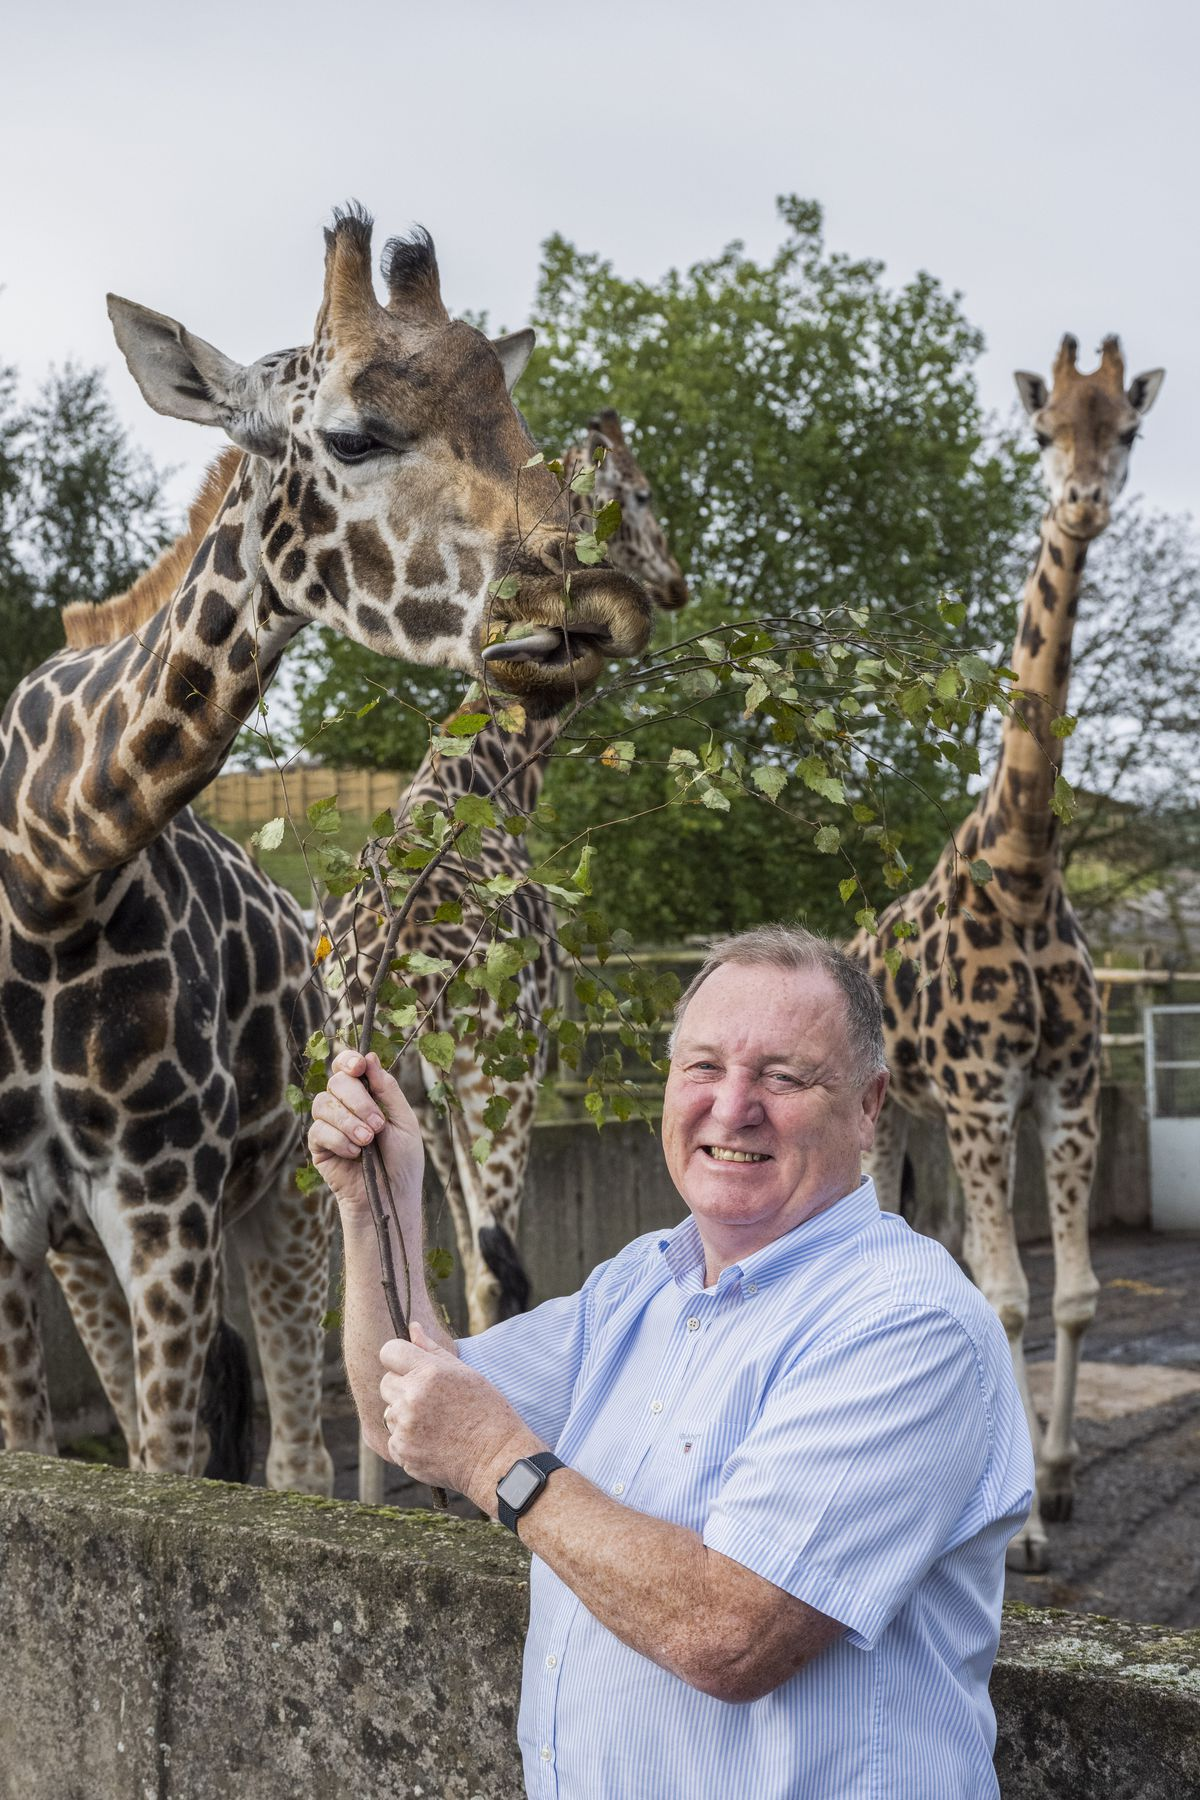 Managing director of West Midland Safari Park, Chris Kelly, with the giraffes who will be getting new homes with the new development